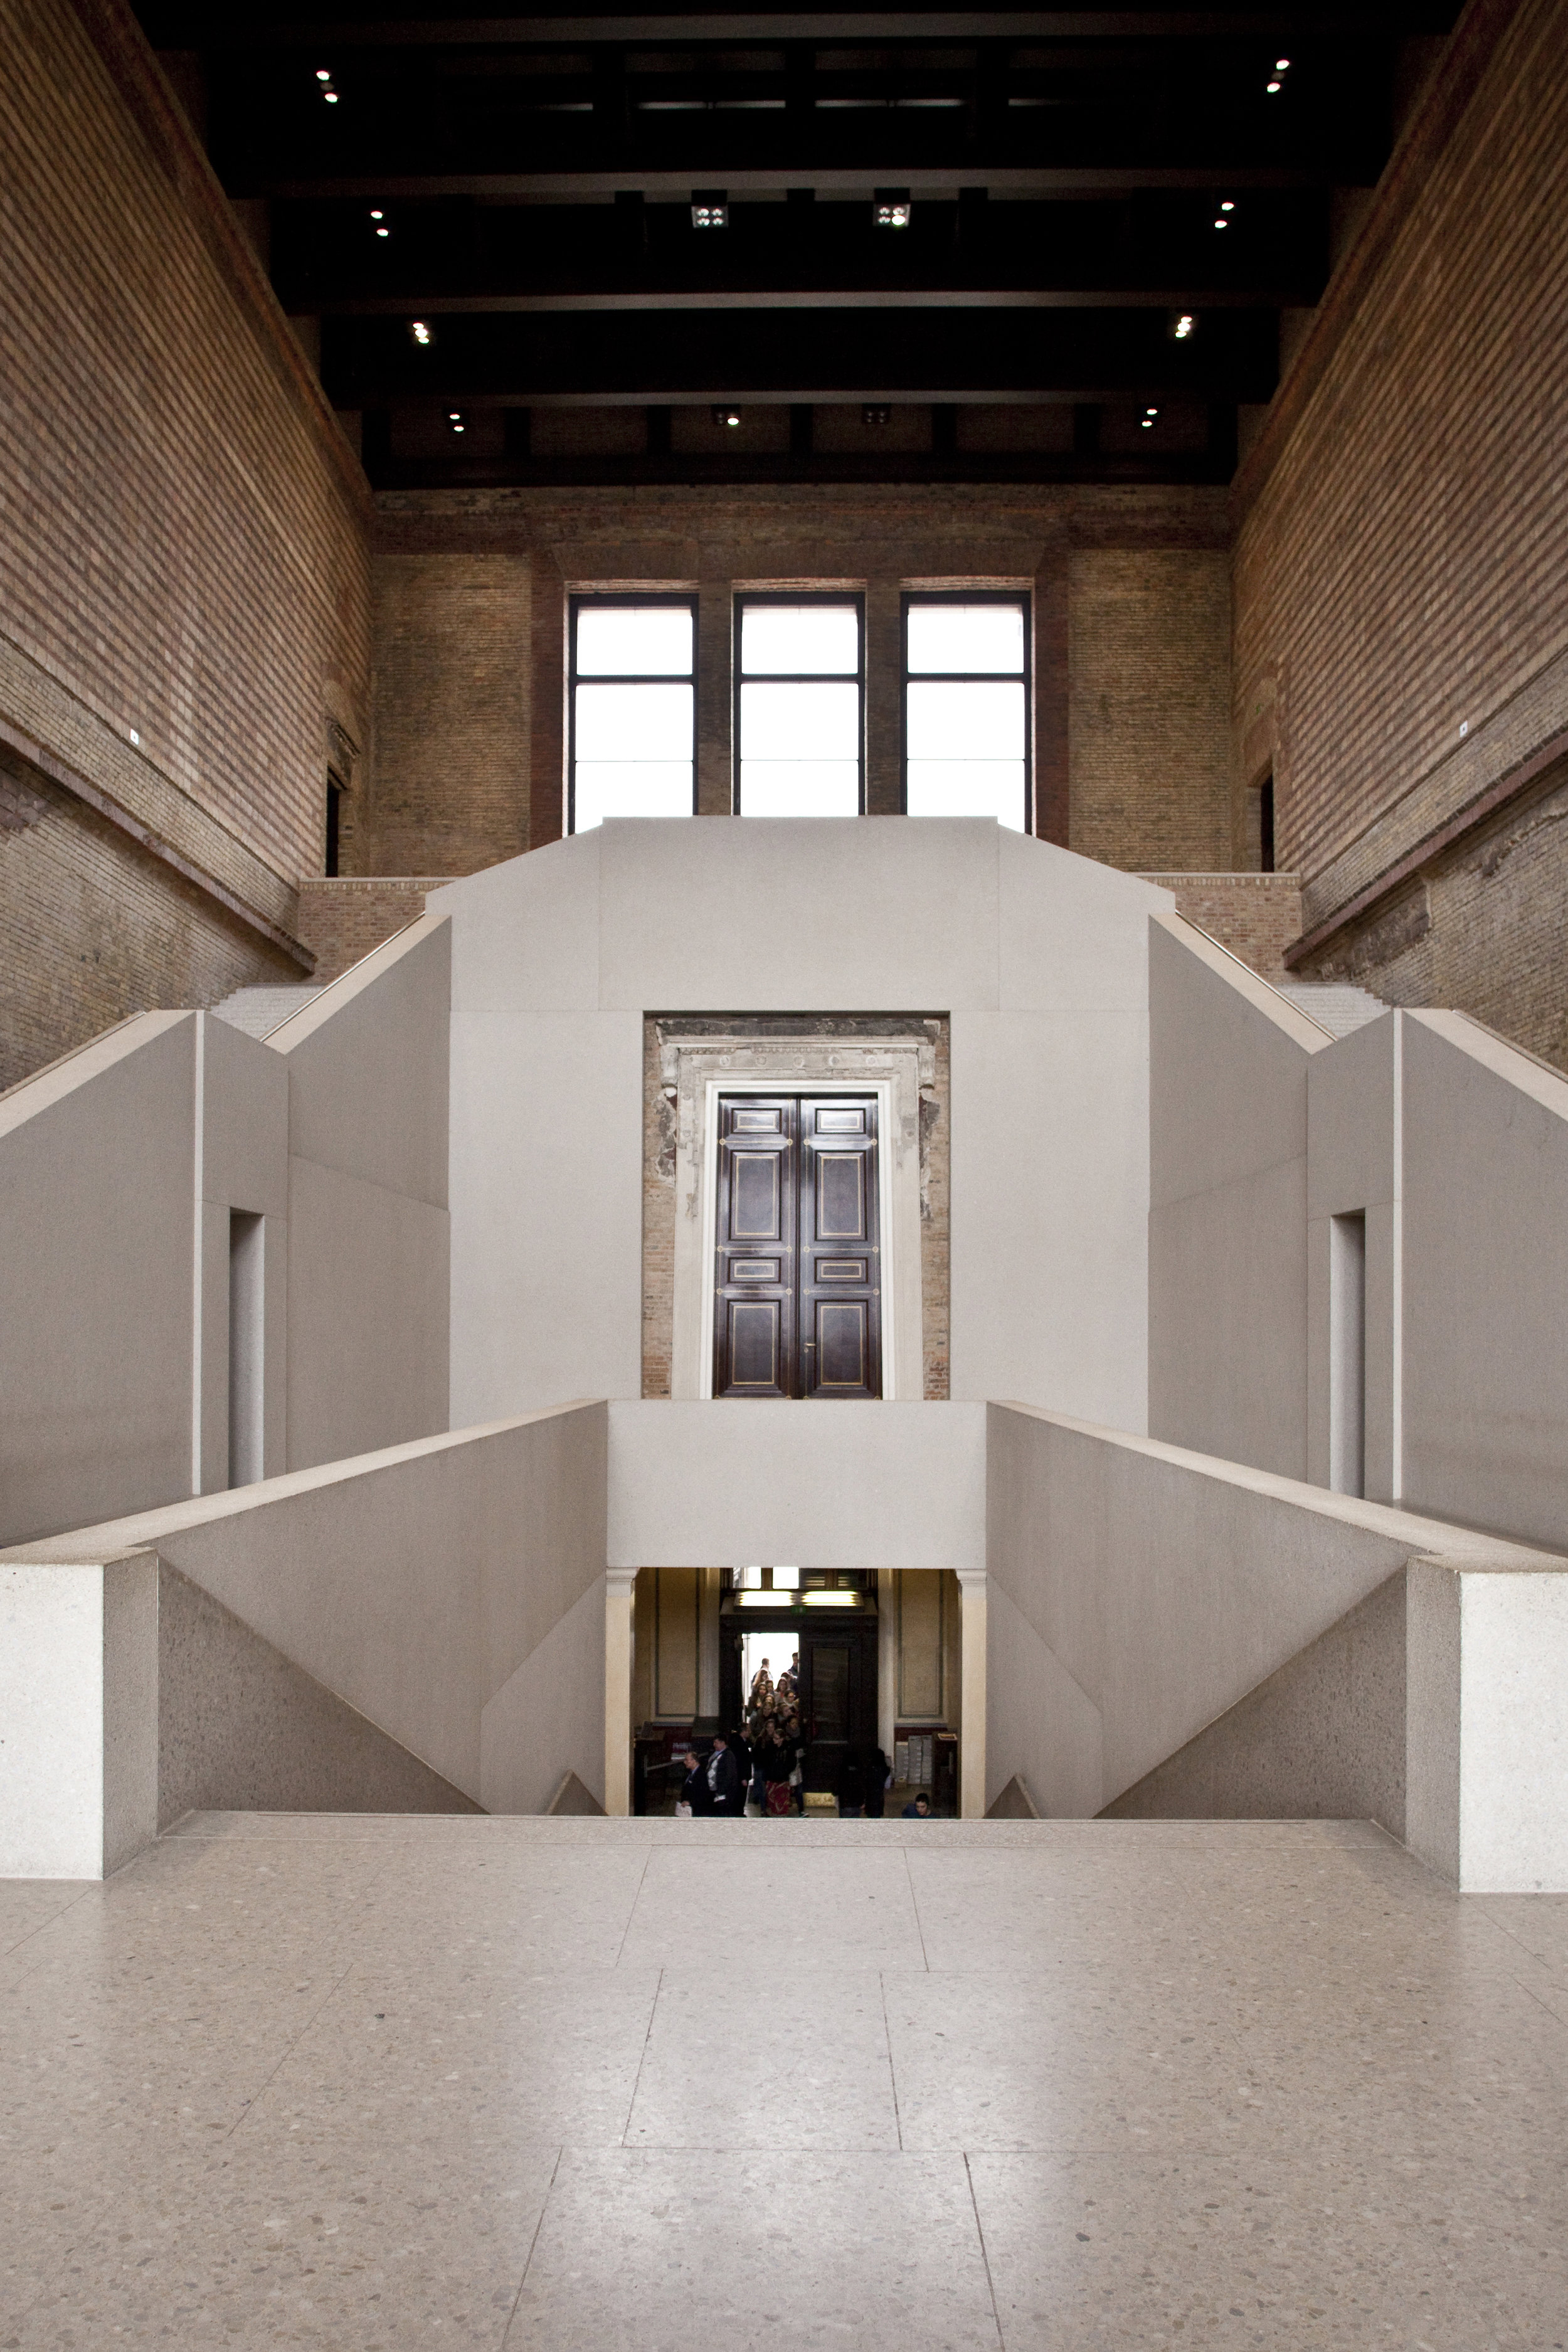 The Neues Museum, Berlin